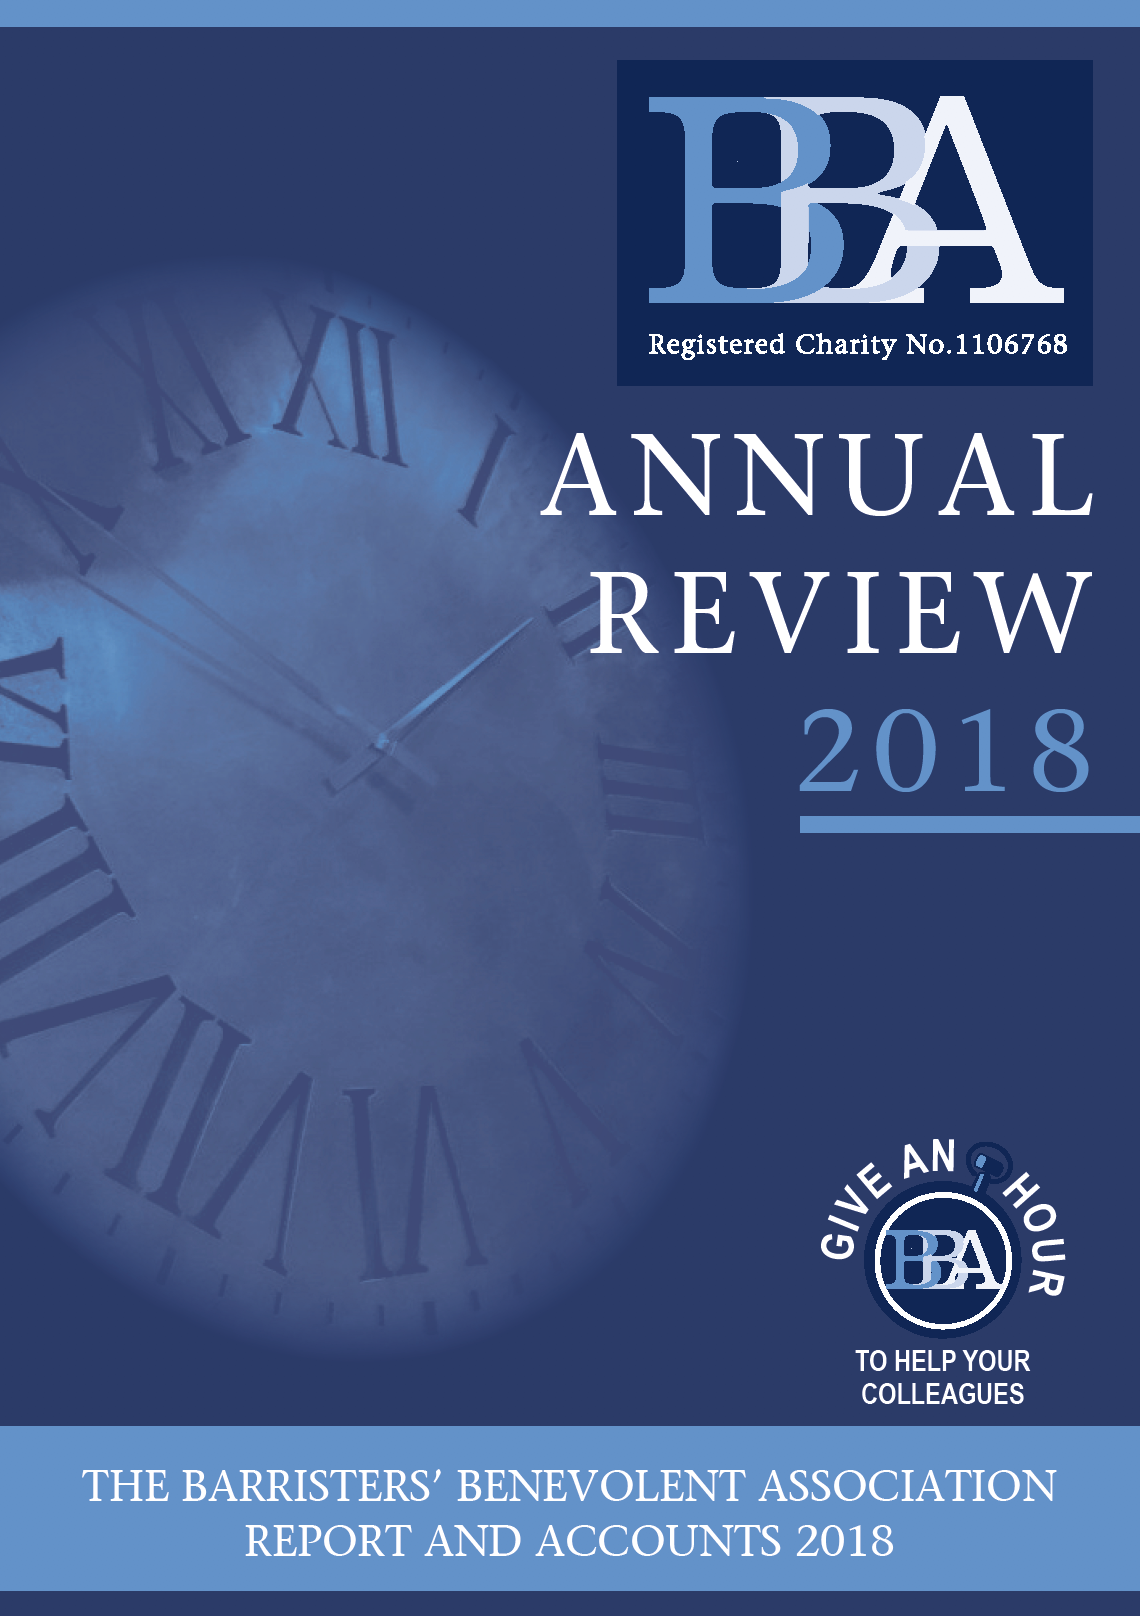 BBA-Annual Review 2018.png